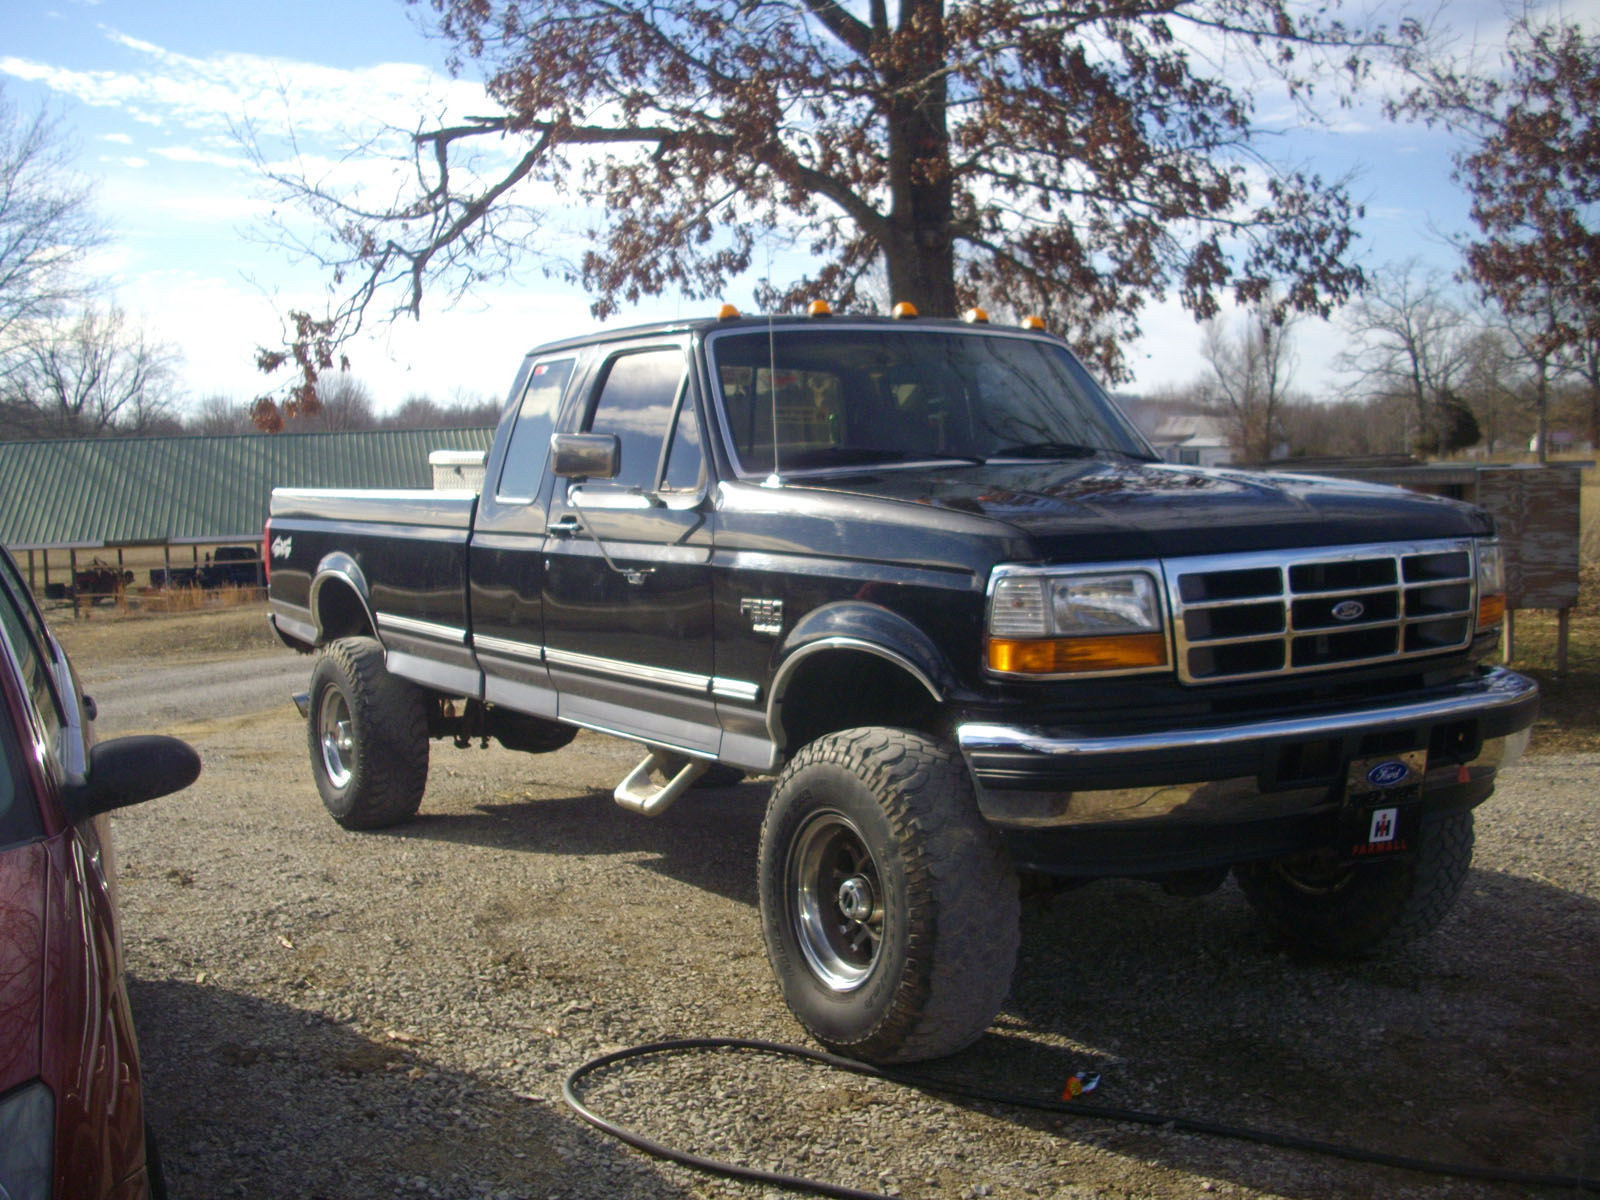 Ford Powerstroke Wallpaper Images Pictures   Becuo 1600x1200